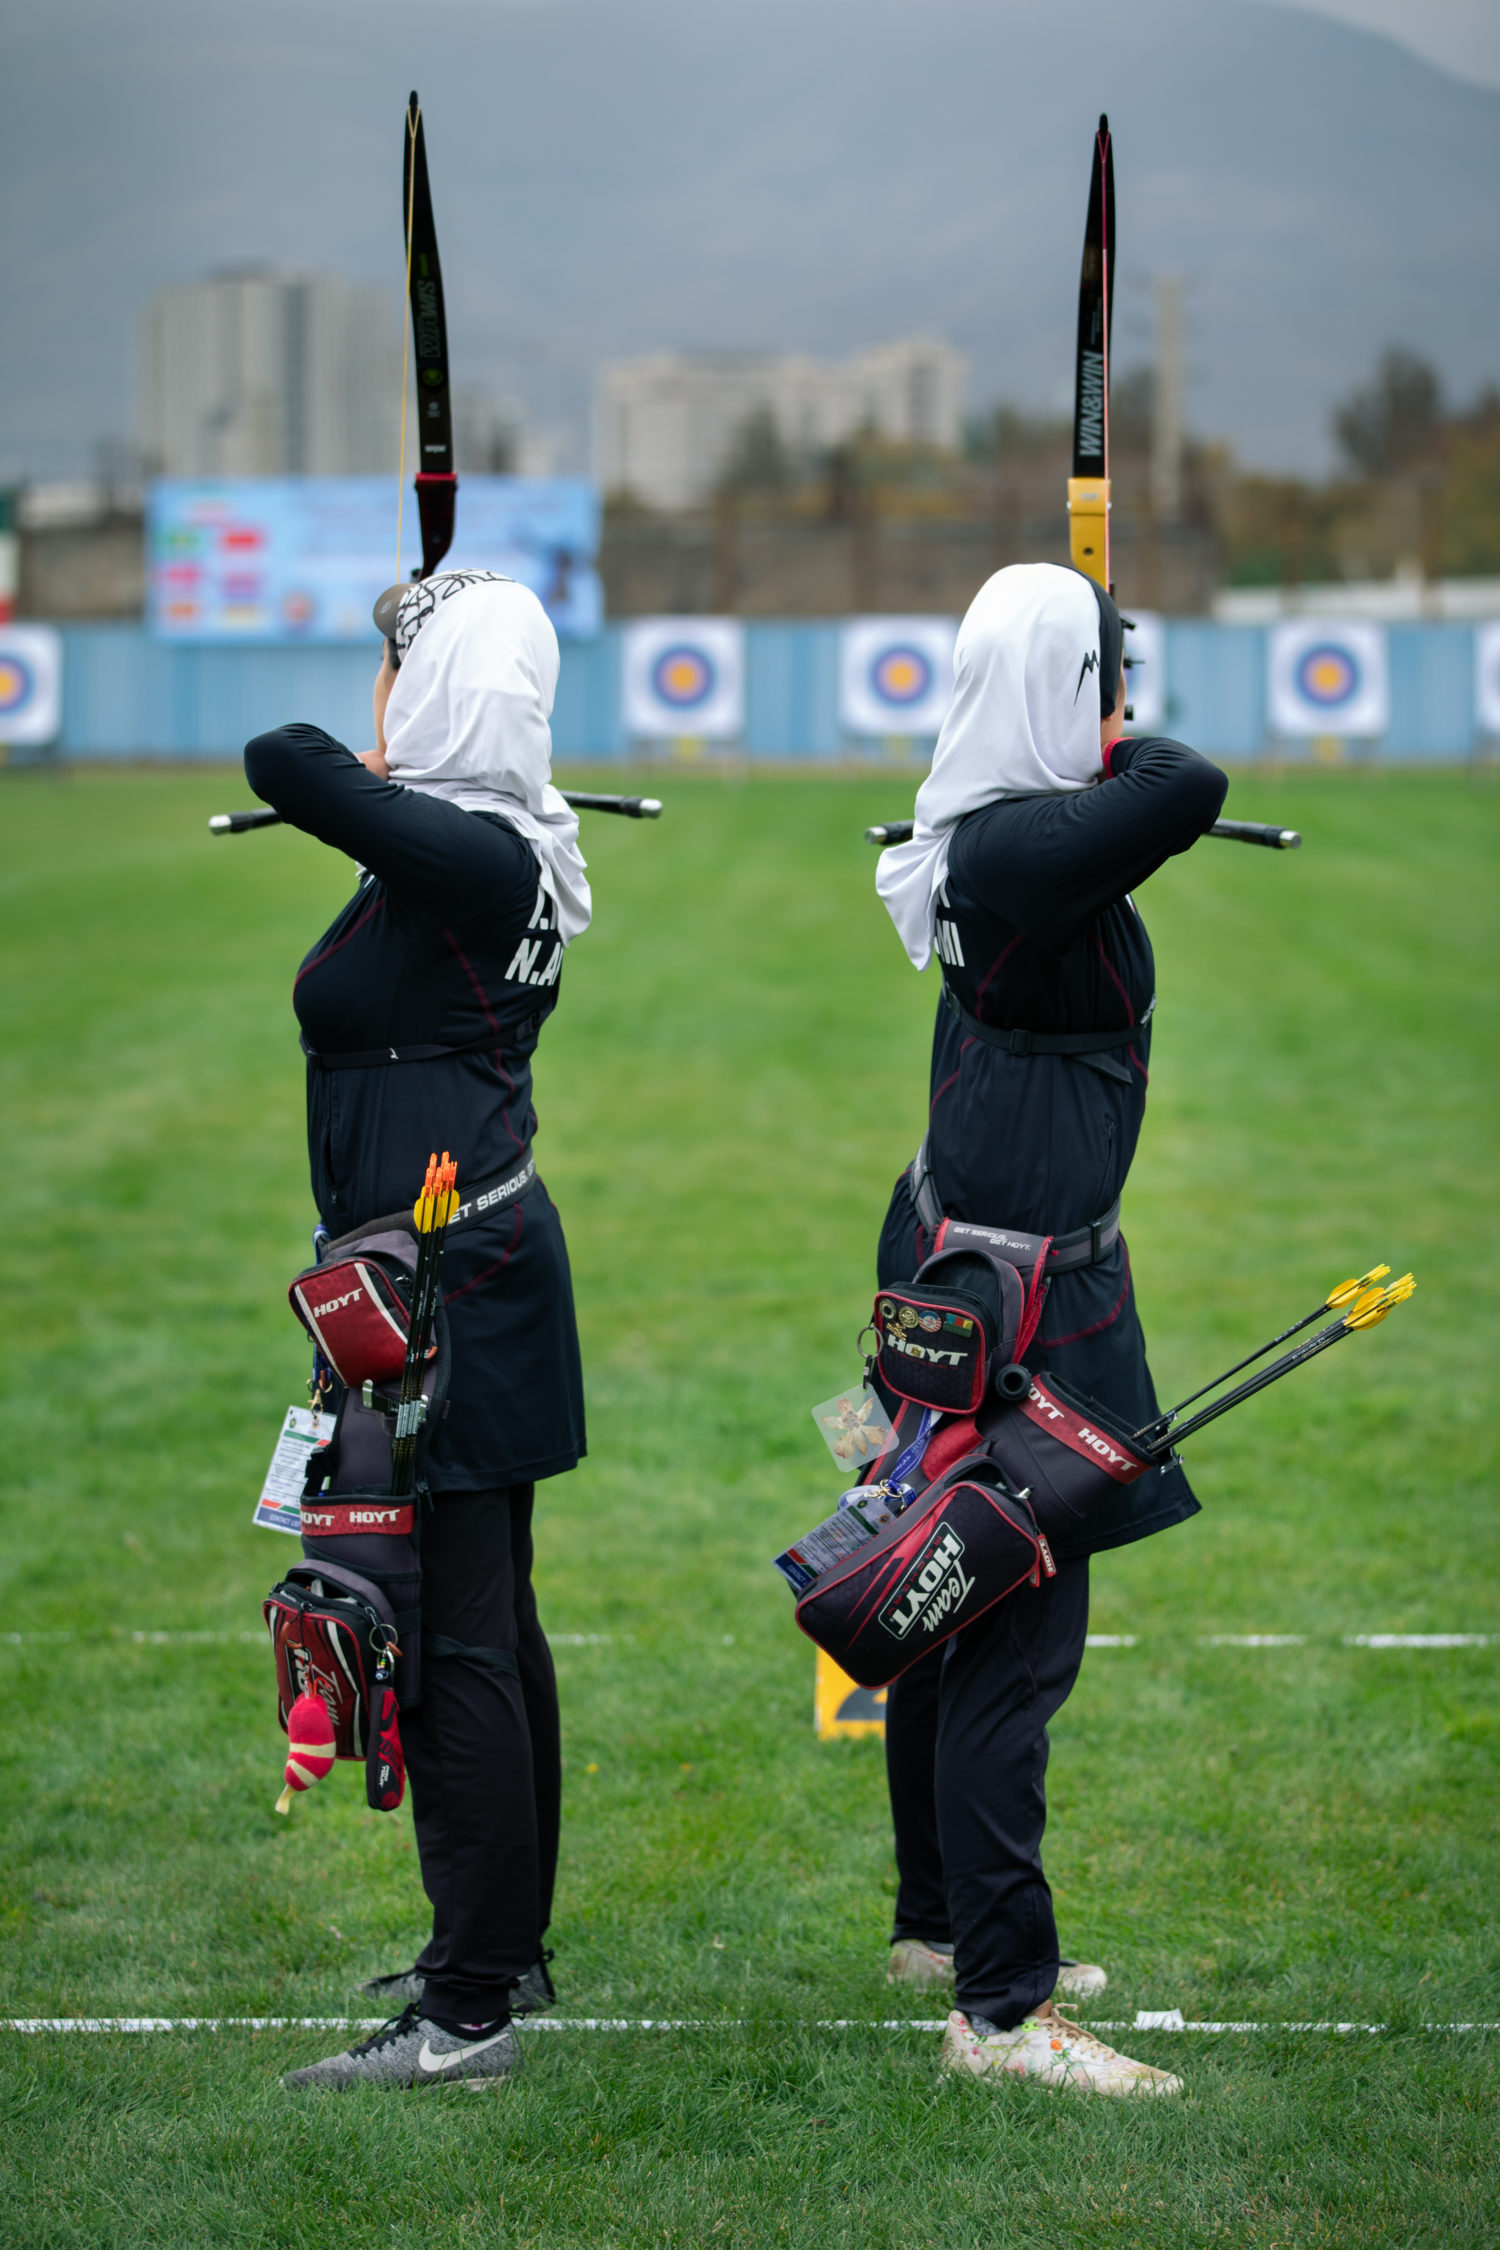 Archers CISM Competition in Iran